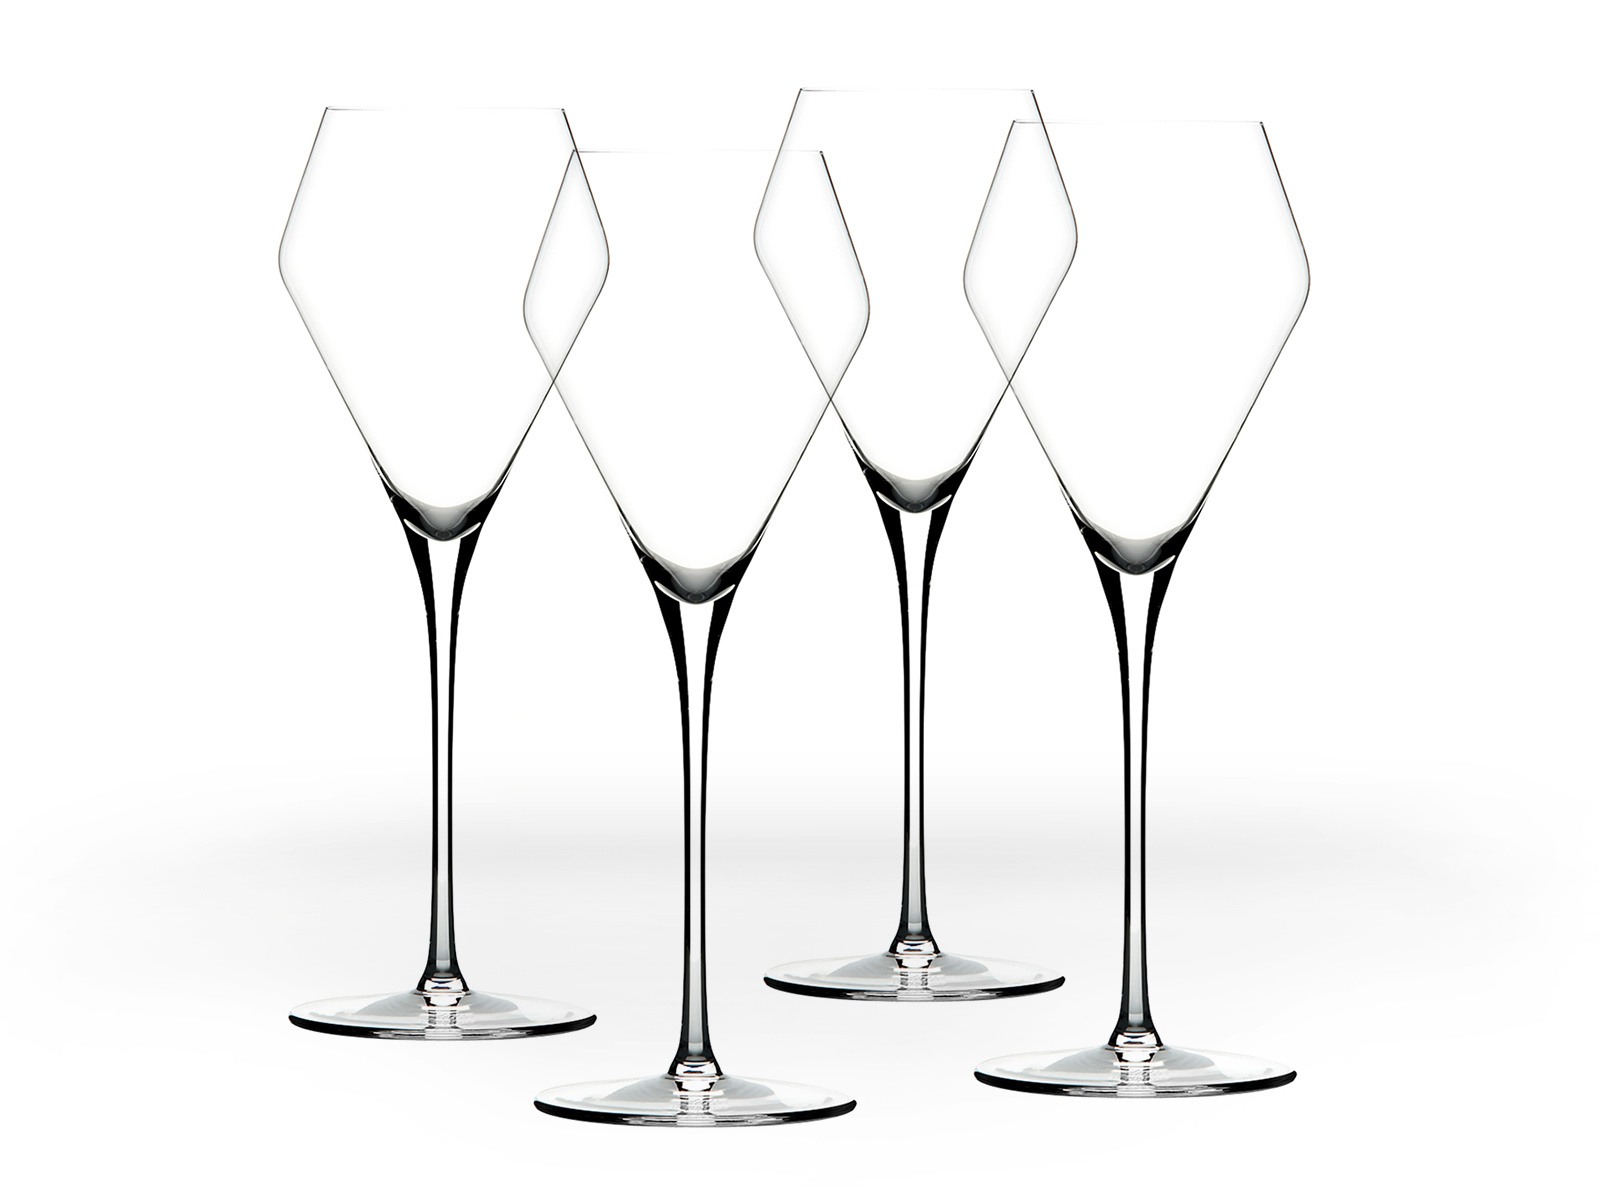 Zalto-Wine-Monger-Sweetwine-Glass-4-1600x1200_sku_cropped_1600x1200_q95_1bc665